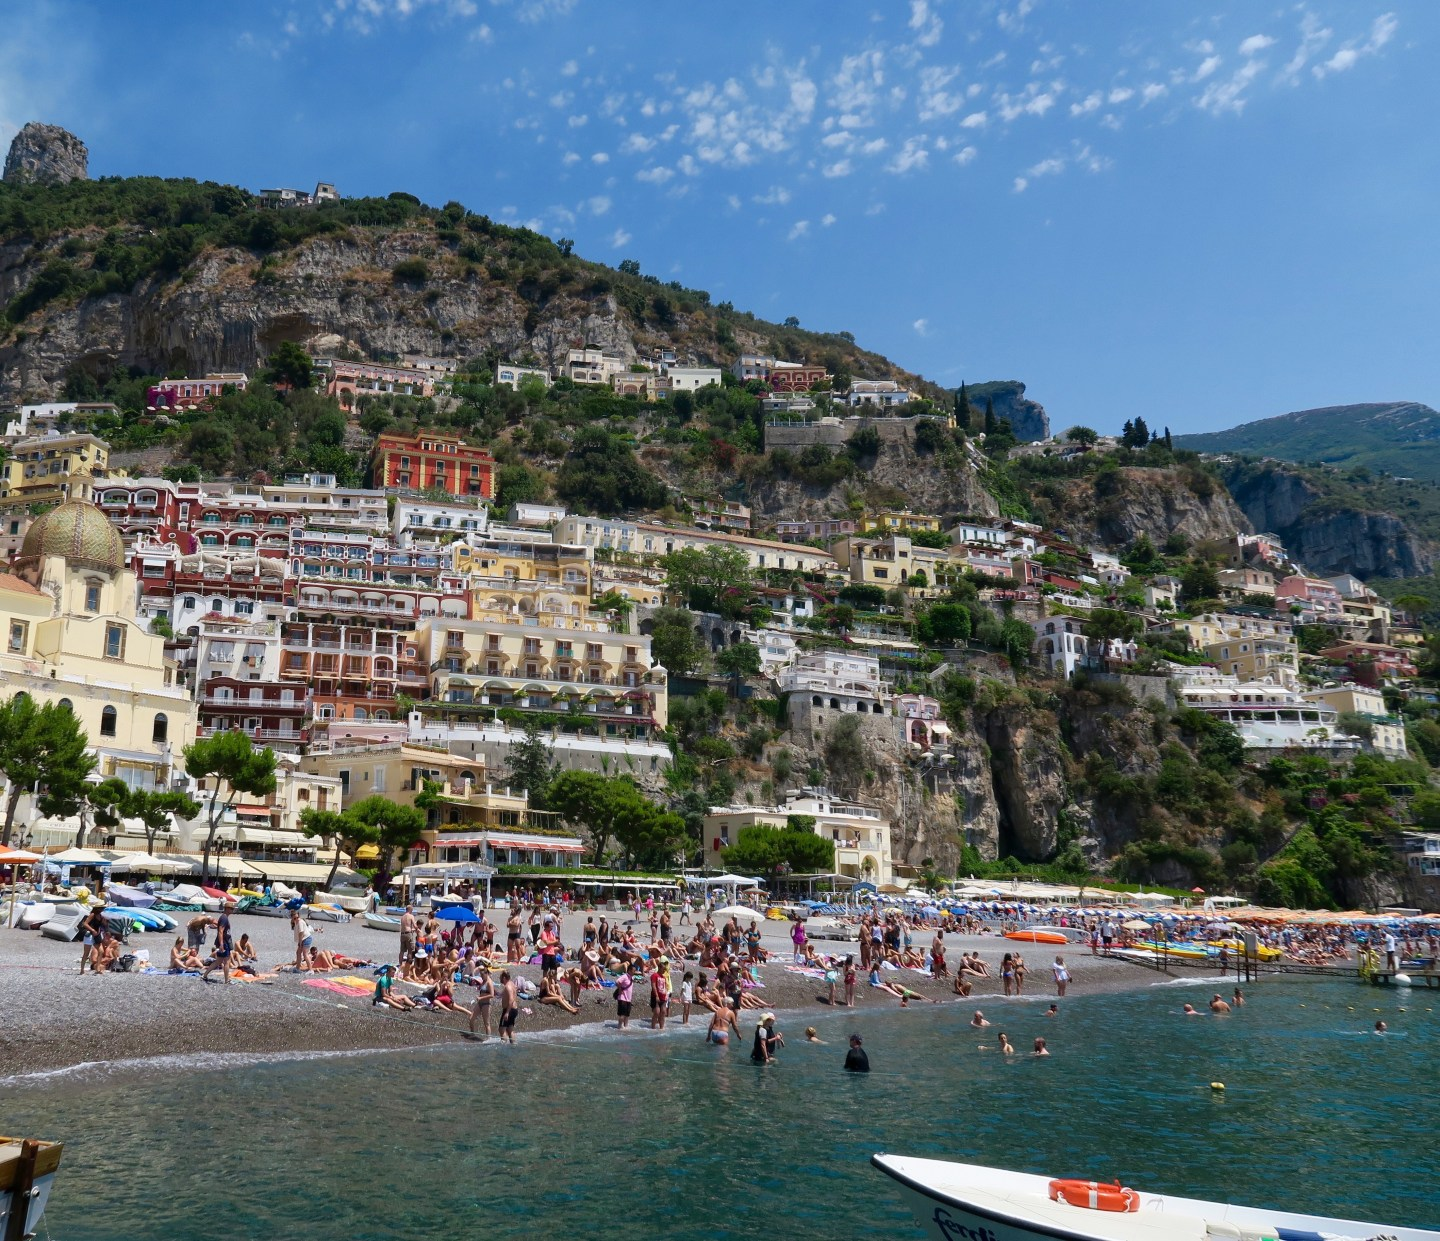 The-Frilly-Diaries-veduta-di-Positano. Costiera-Amalfitana-on-the-road